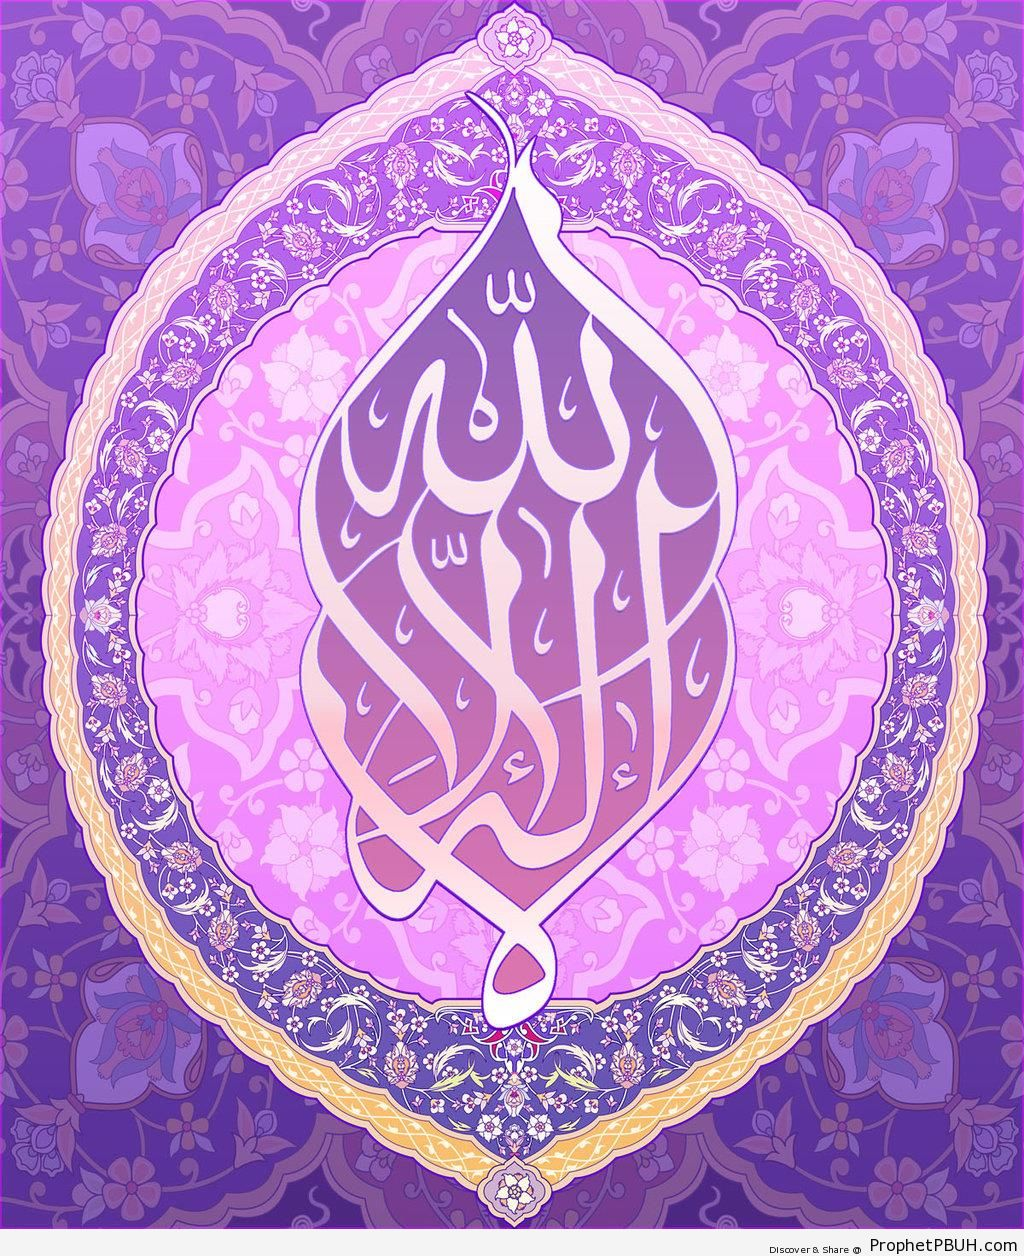 Violet and Pink Shahadah Calligraphy and Frame - Islamic Calligraphy and Typography